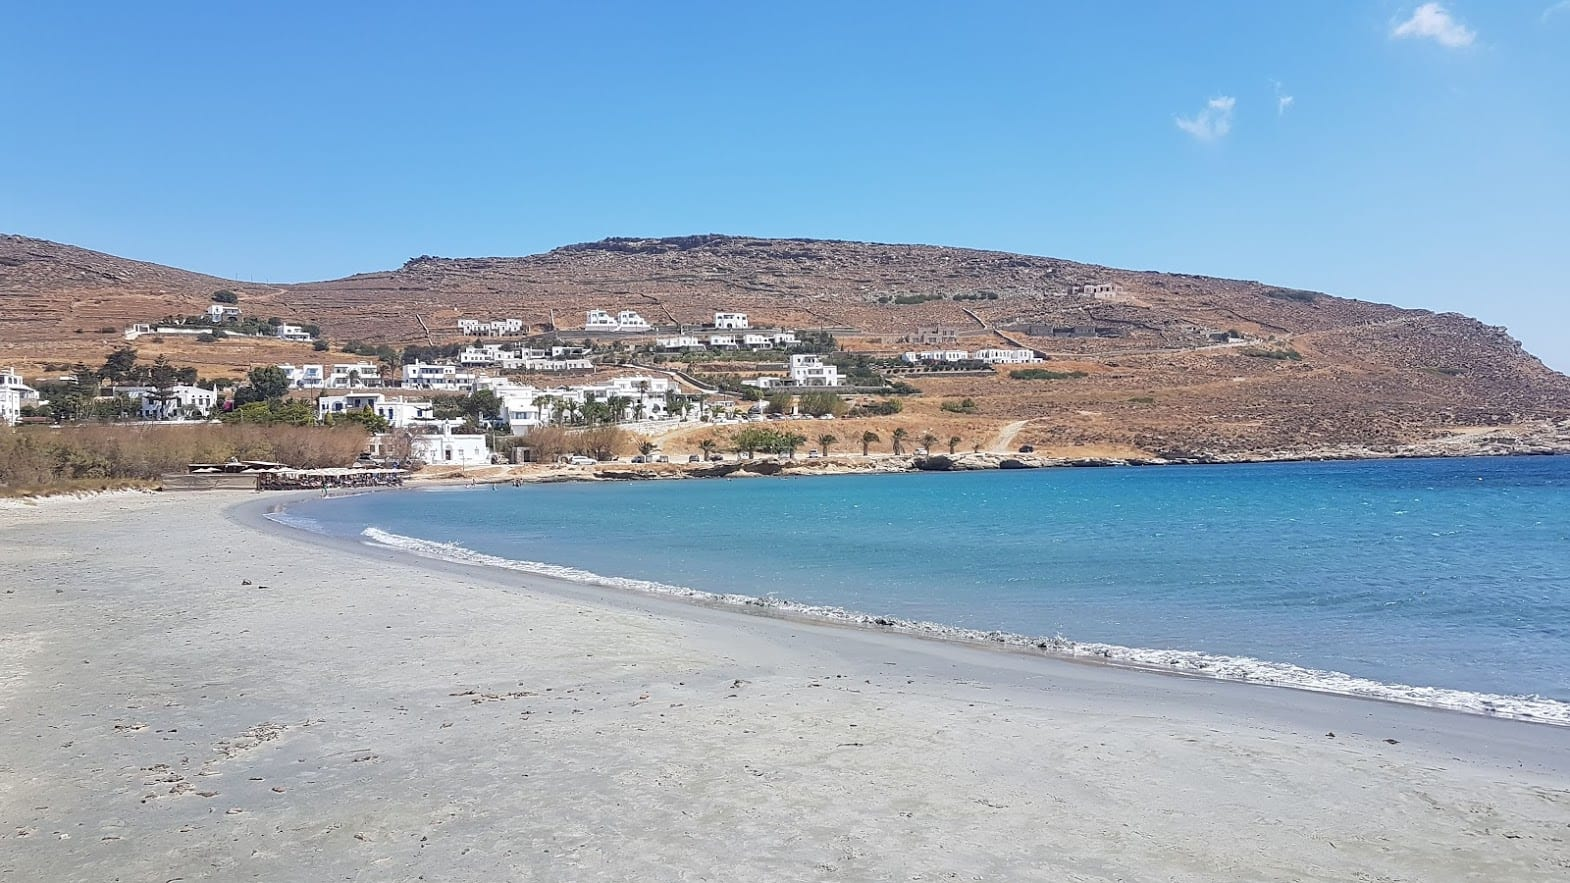 The beach at Agios Ioannis Porto in Tinos Island Greece